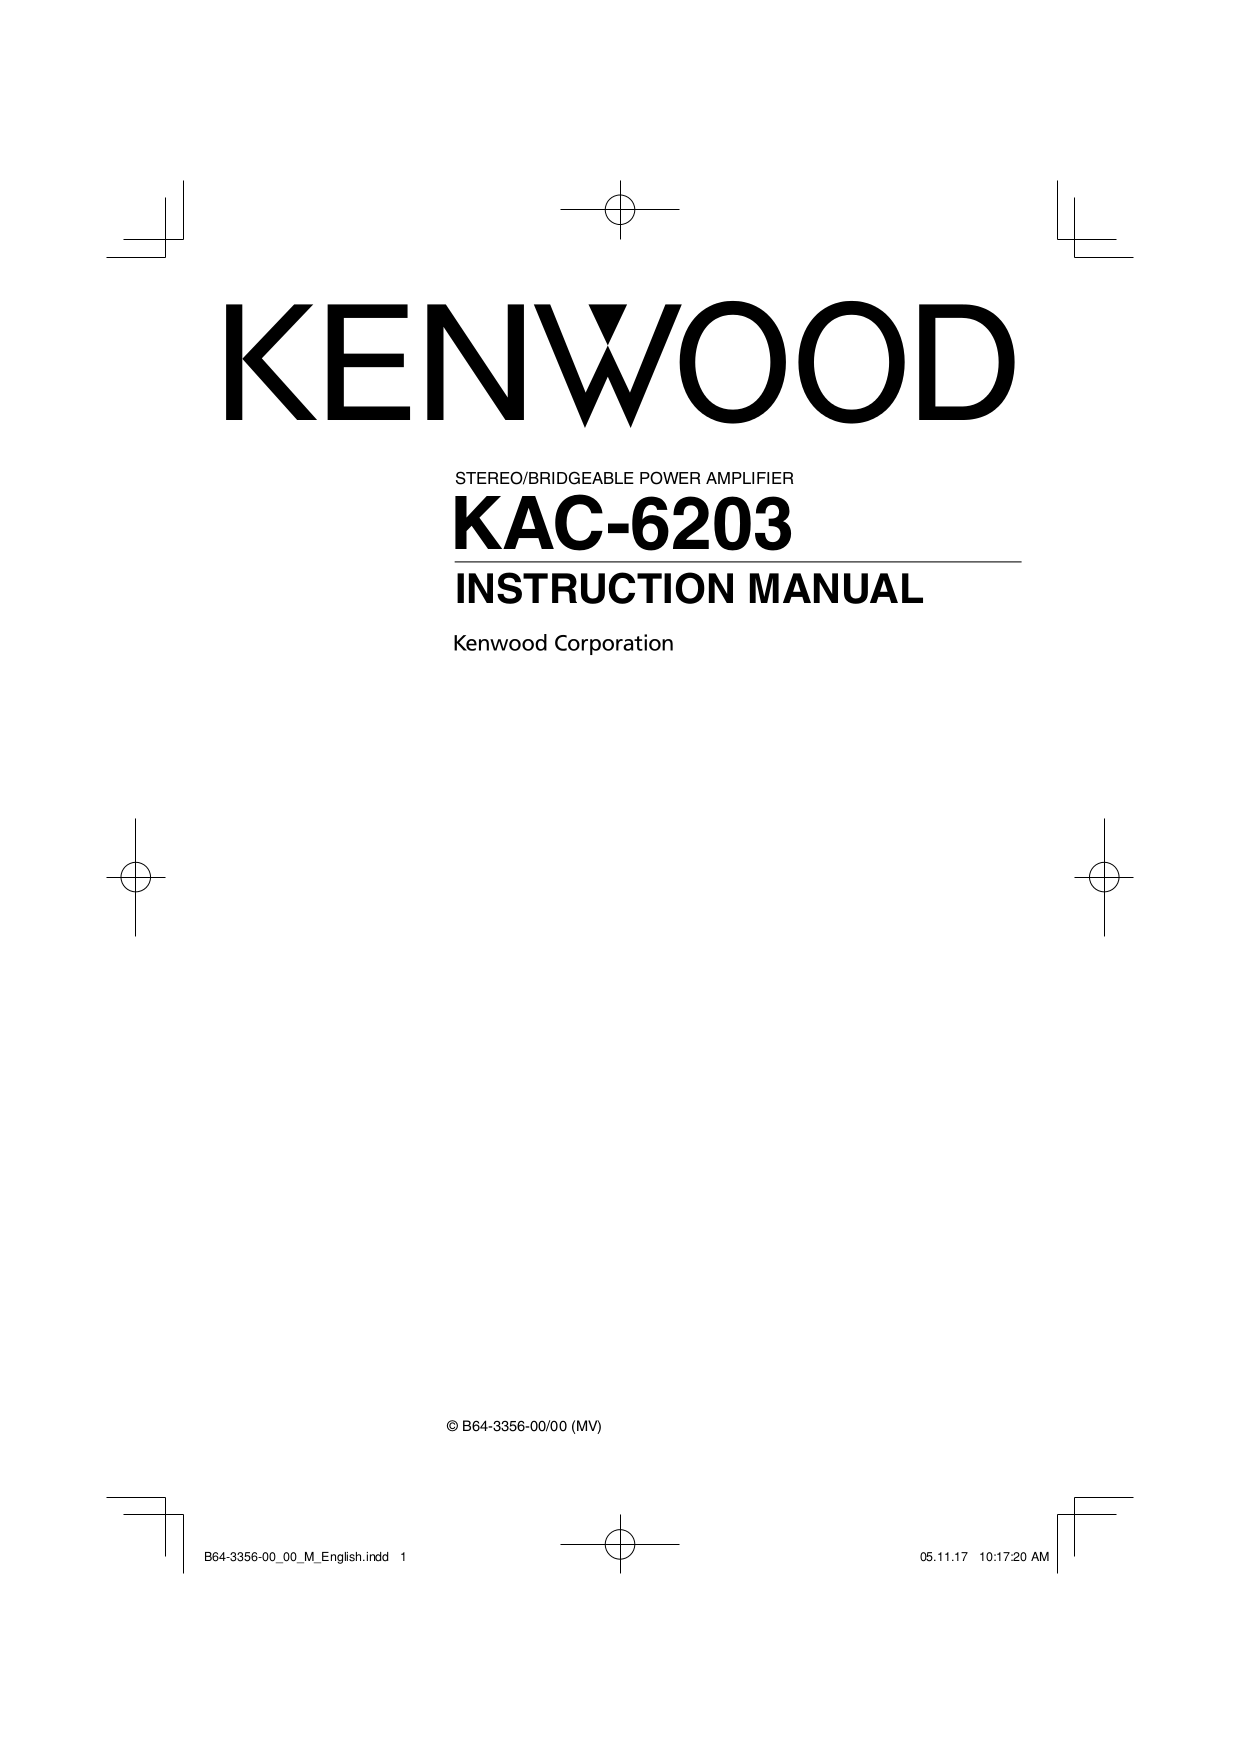 KAC 6203 ins manual.pdf 0 pdf manual for kenwood amp kac 820 kenwood kac 622 wiring diagram at reclaimingppi.co